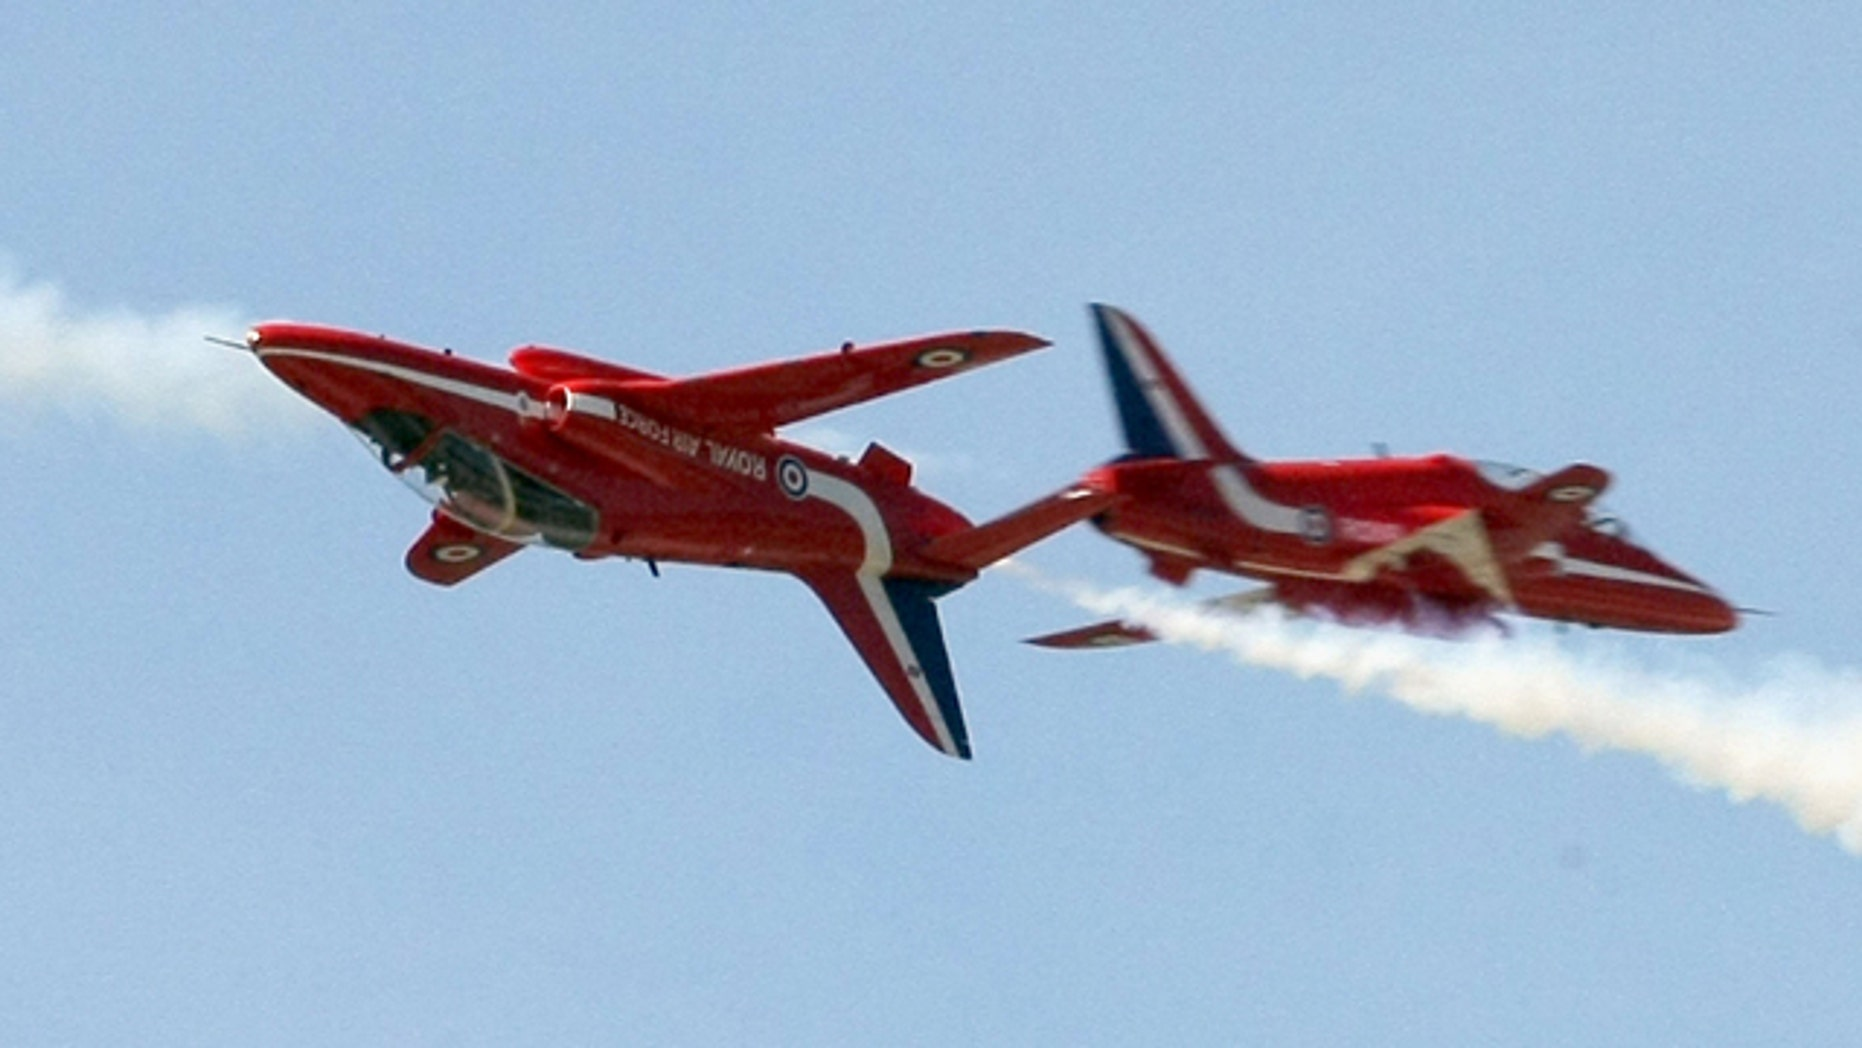 March 22, 2010: Britain's Red Arrows aerobatics squad fly over the Greek Air Force base of Kastelli, on the island of Crete, during a media presentation.